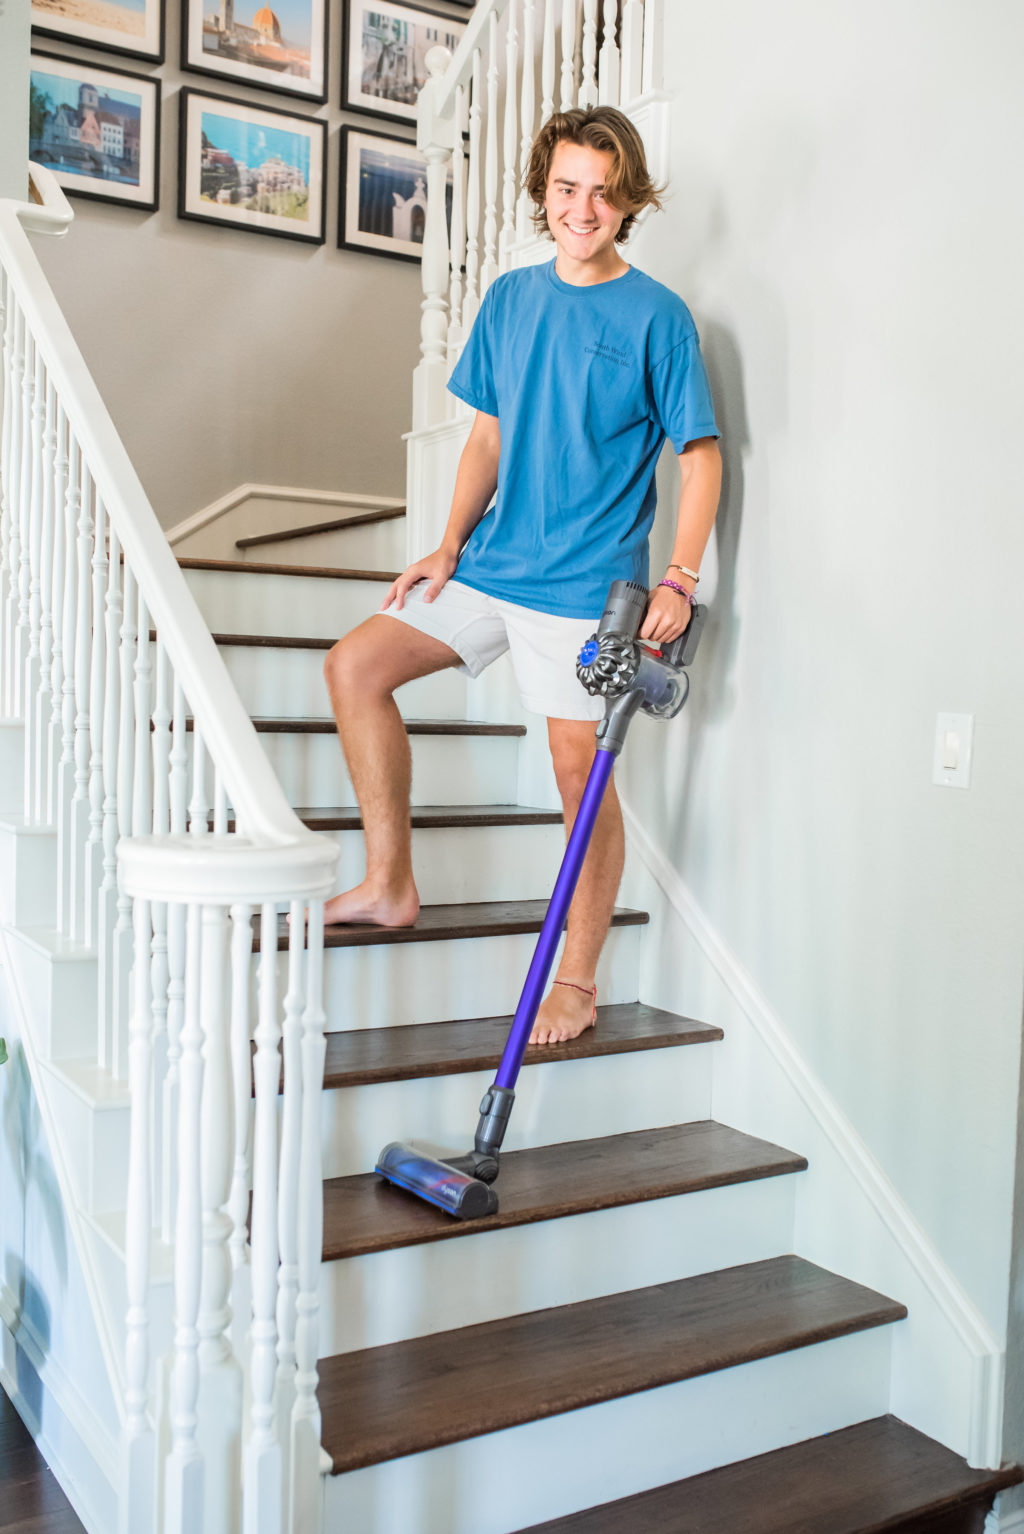 kids chores dyson stick vacuum stairs